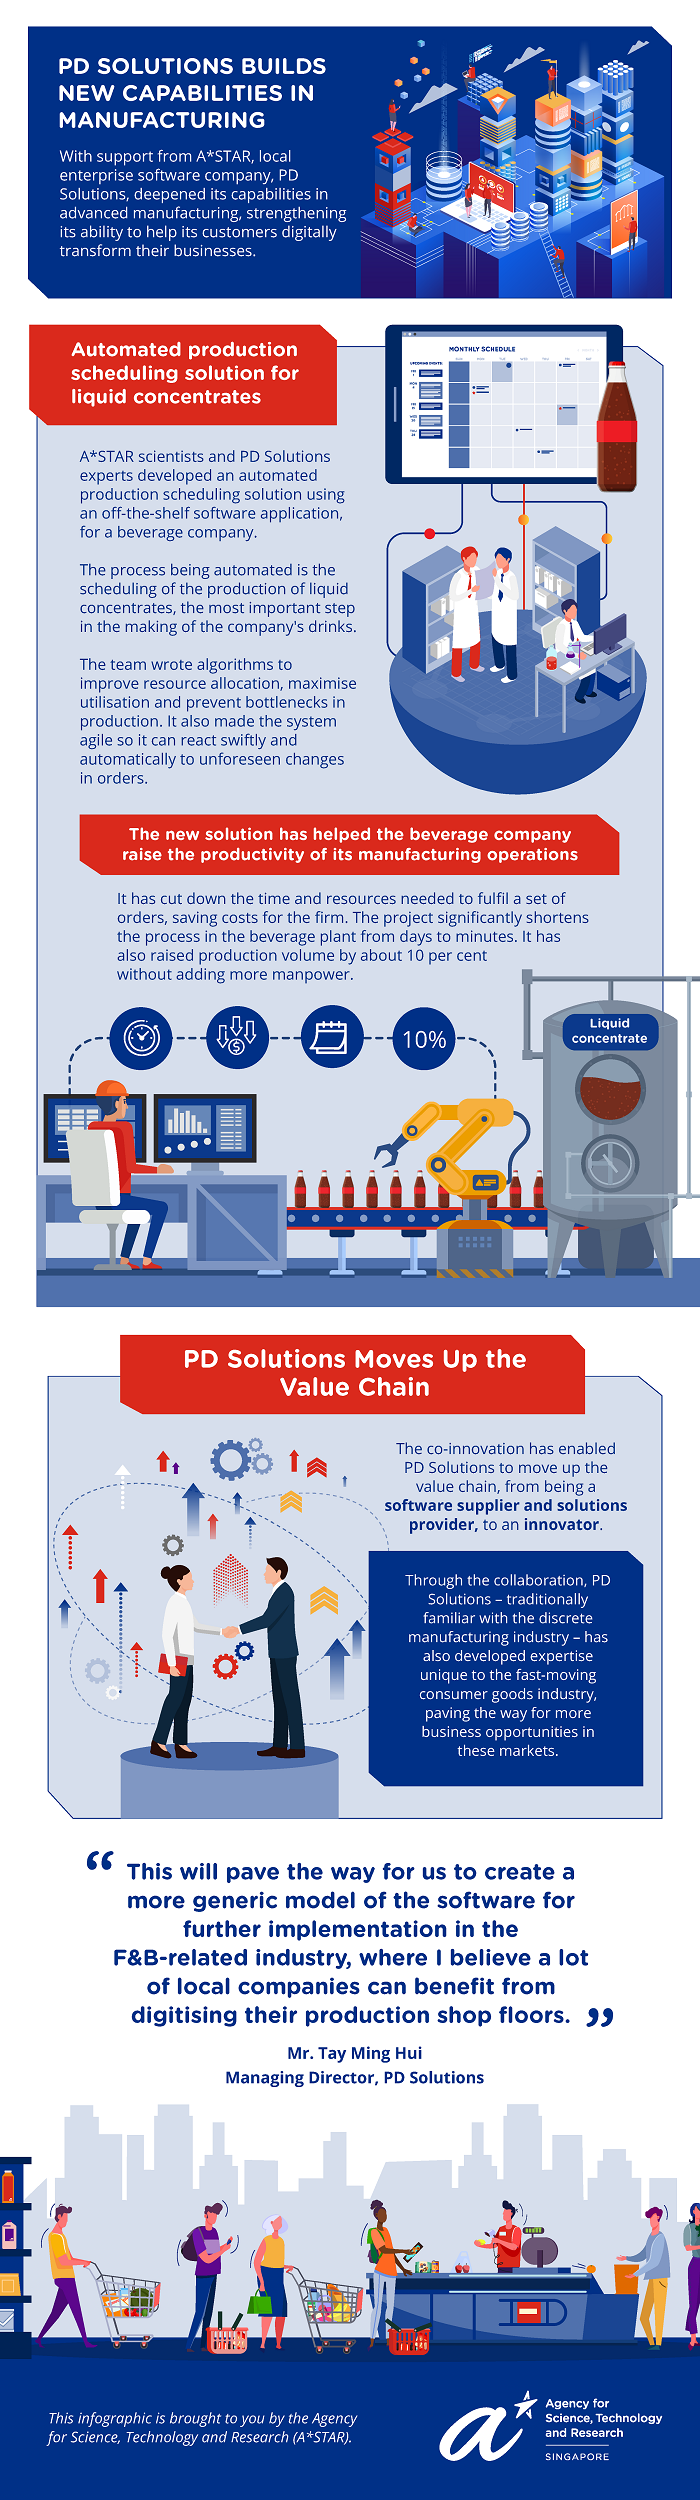 PD Solutions Builds New Capabilities in Manufacturing